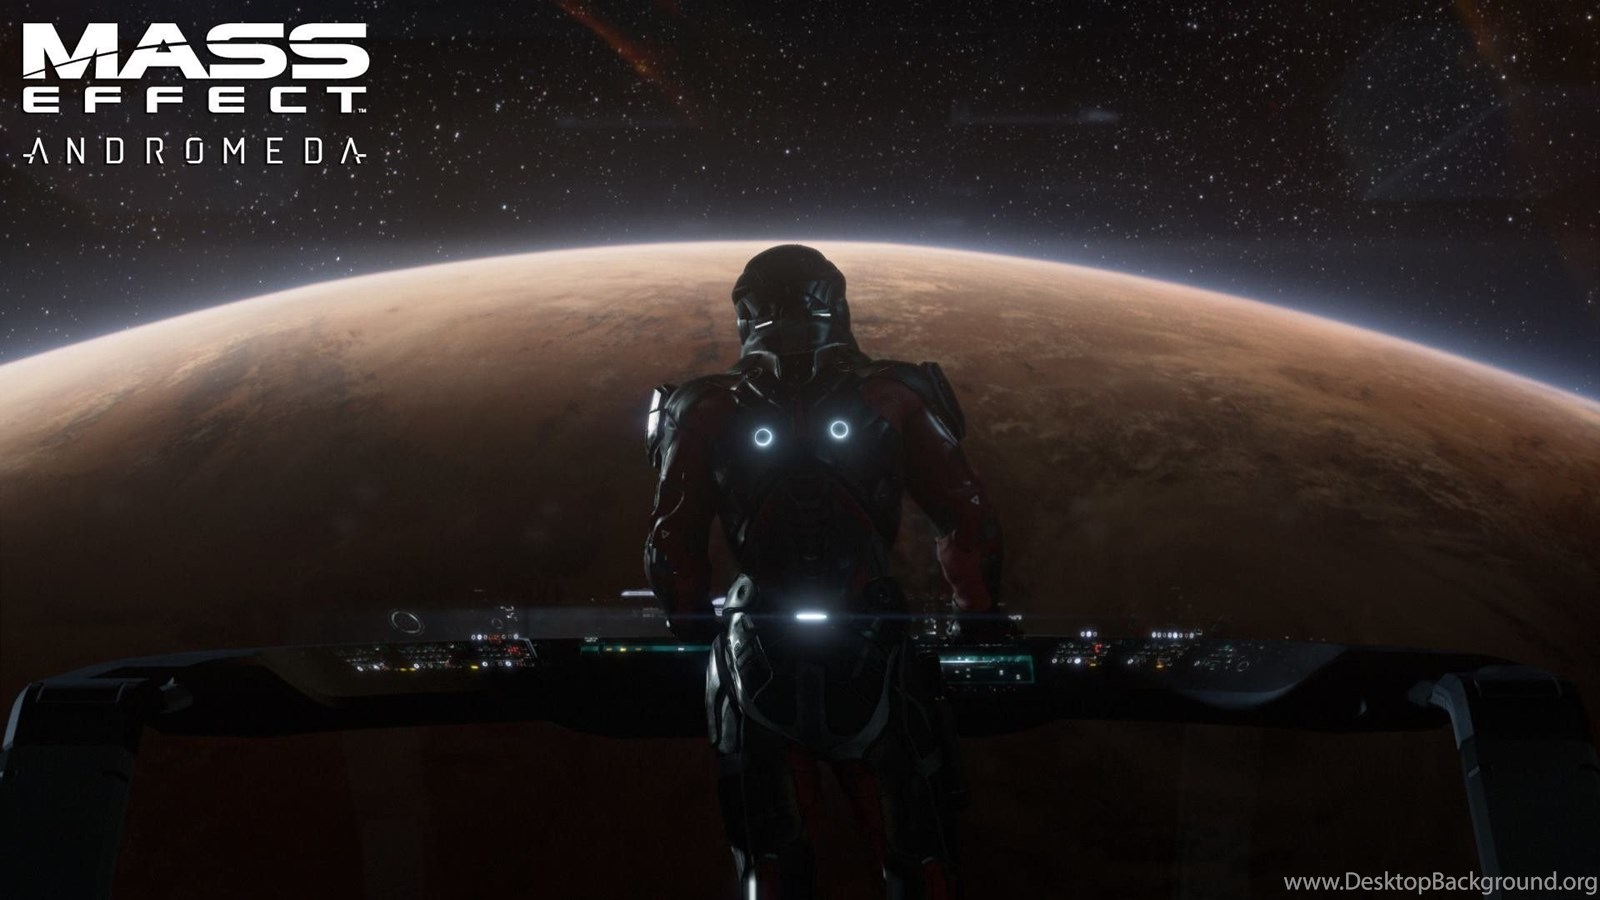 14 Mass Effect Andromeda Hd Wallpapers Desktop Background